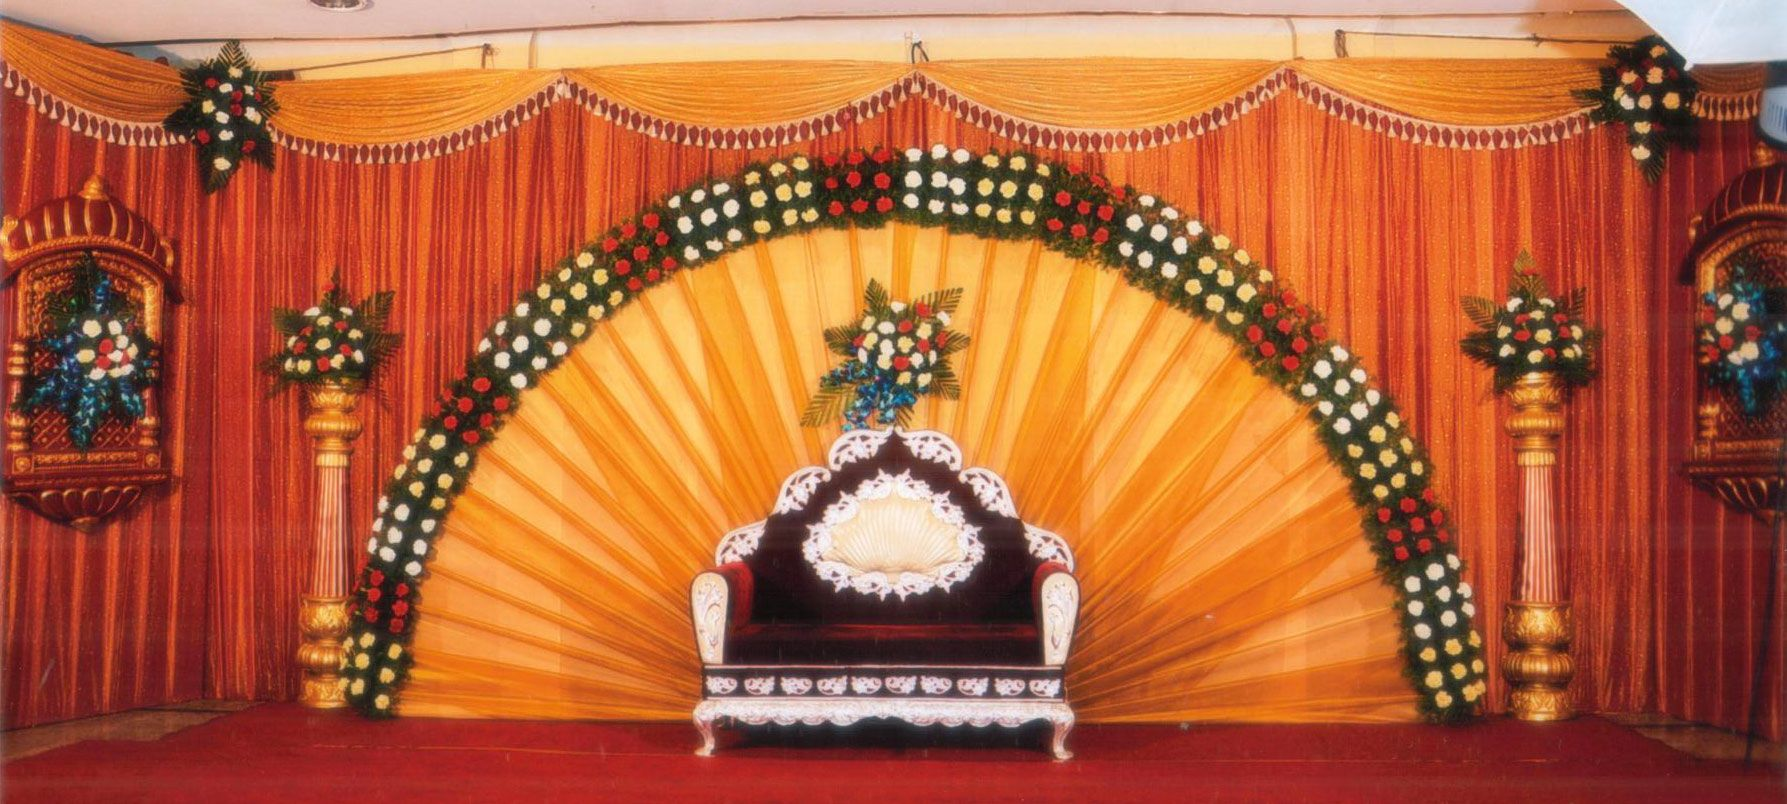 Chennai wedding decoration reception upanayana pinterest chennai wedding decoration reception junglespirit Gallery